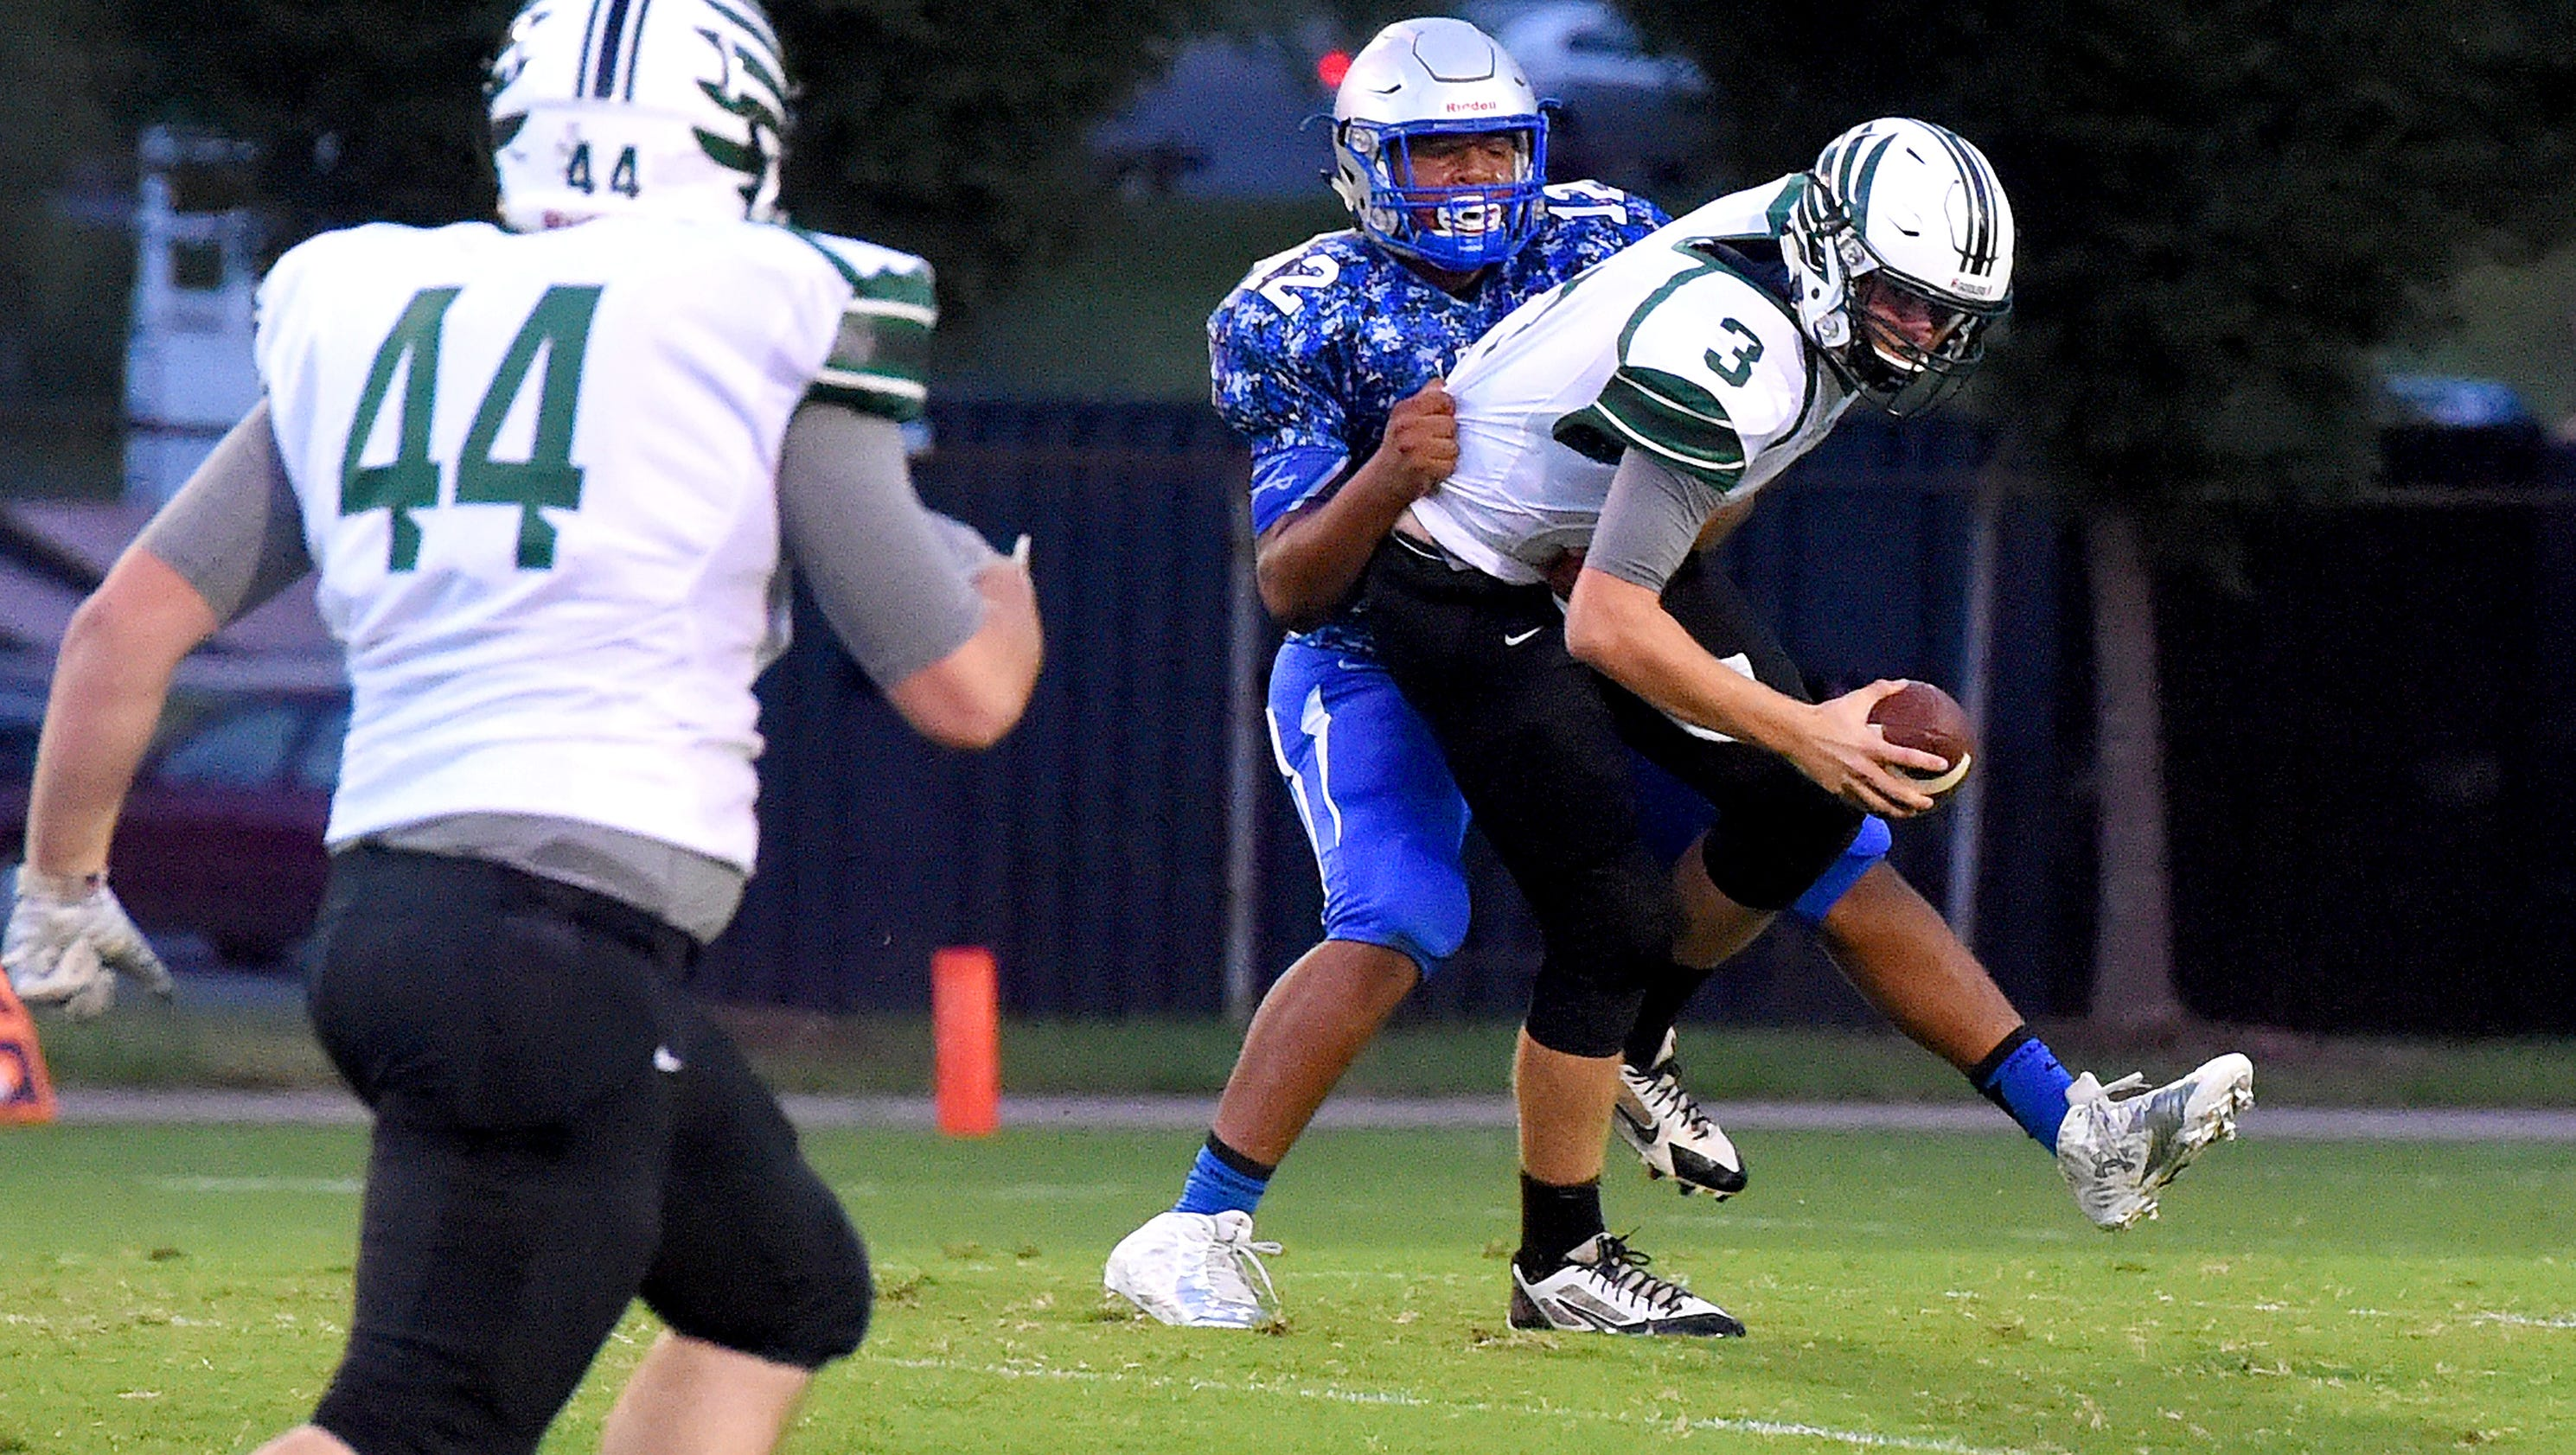 Defense did it for Leemen in win over Gobblers